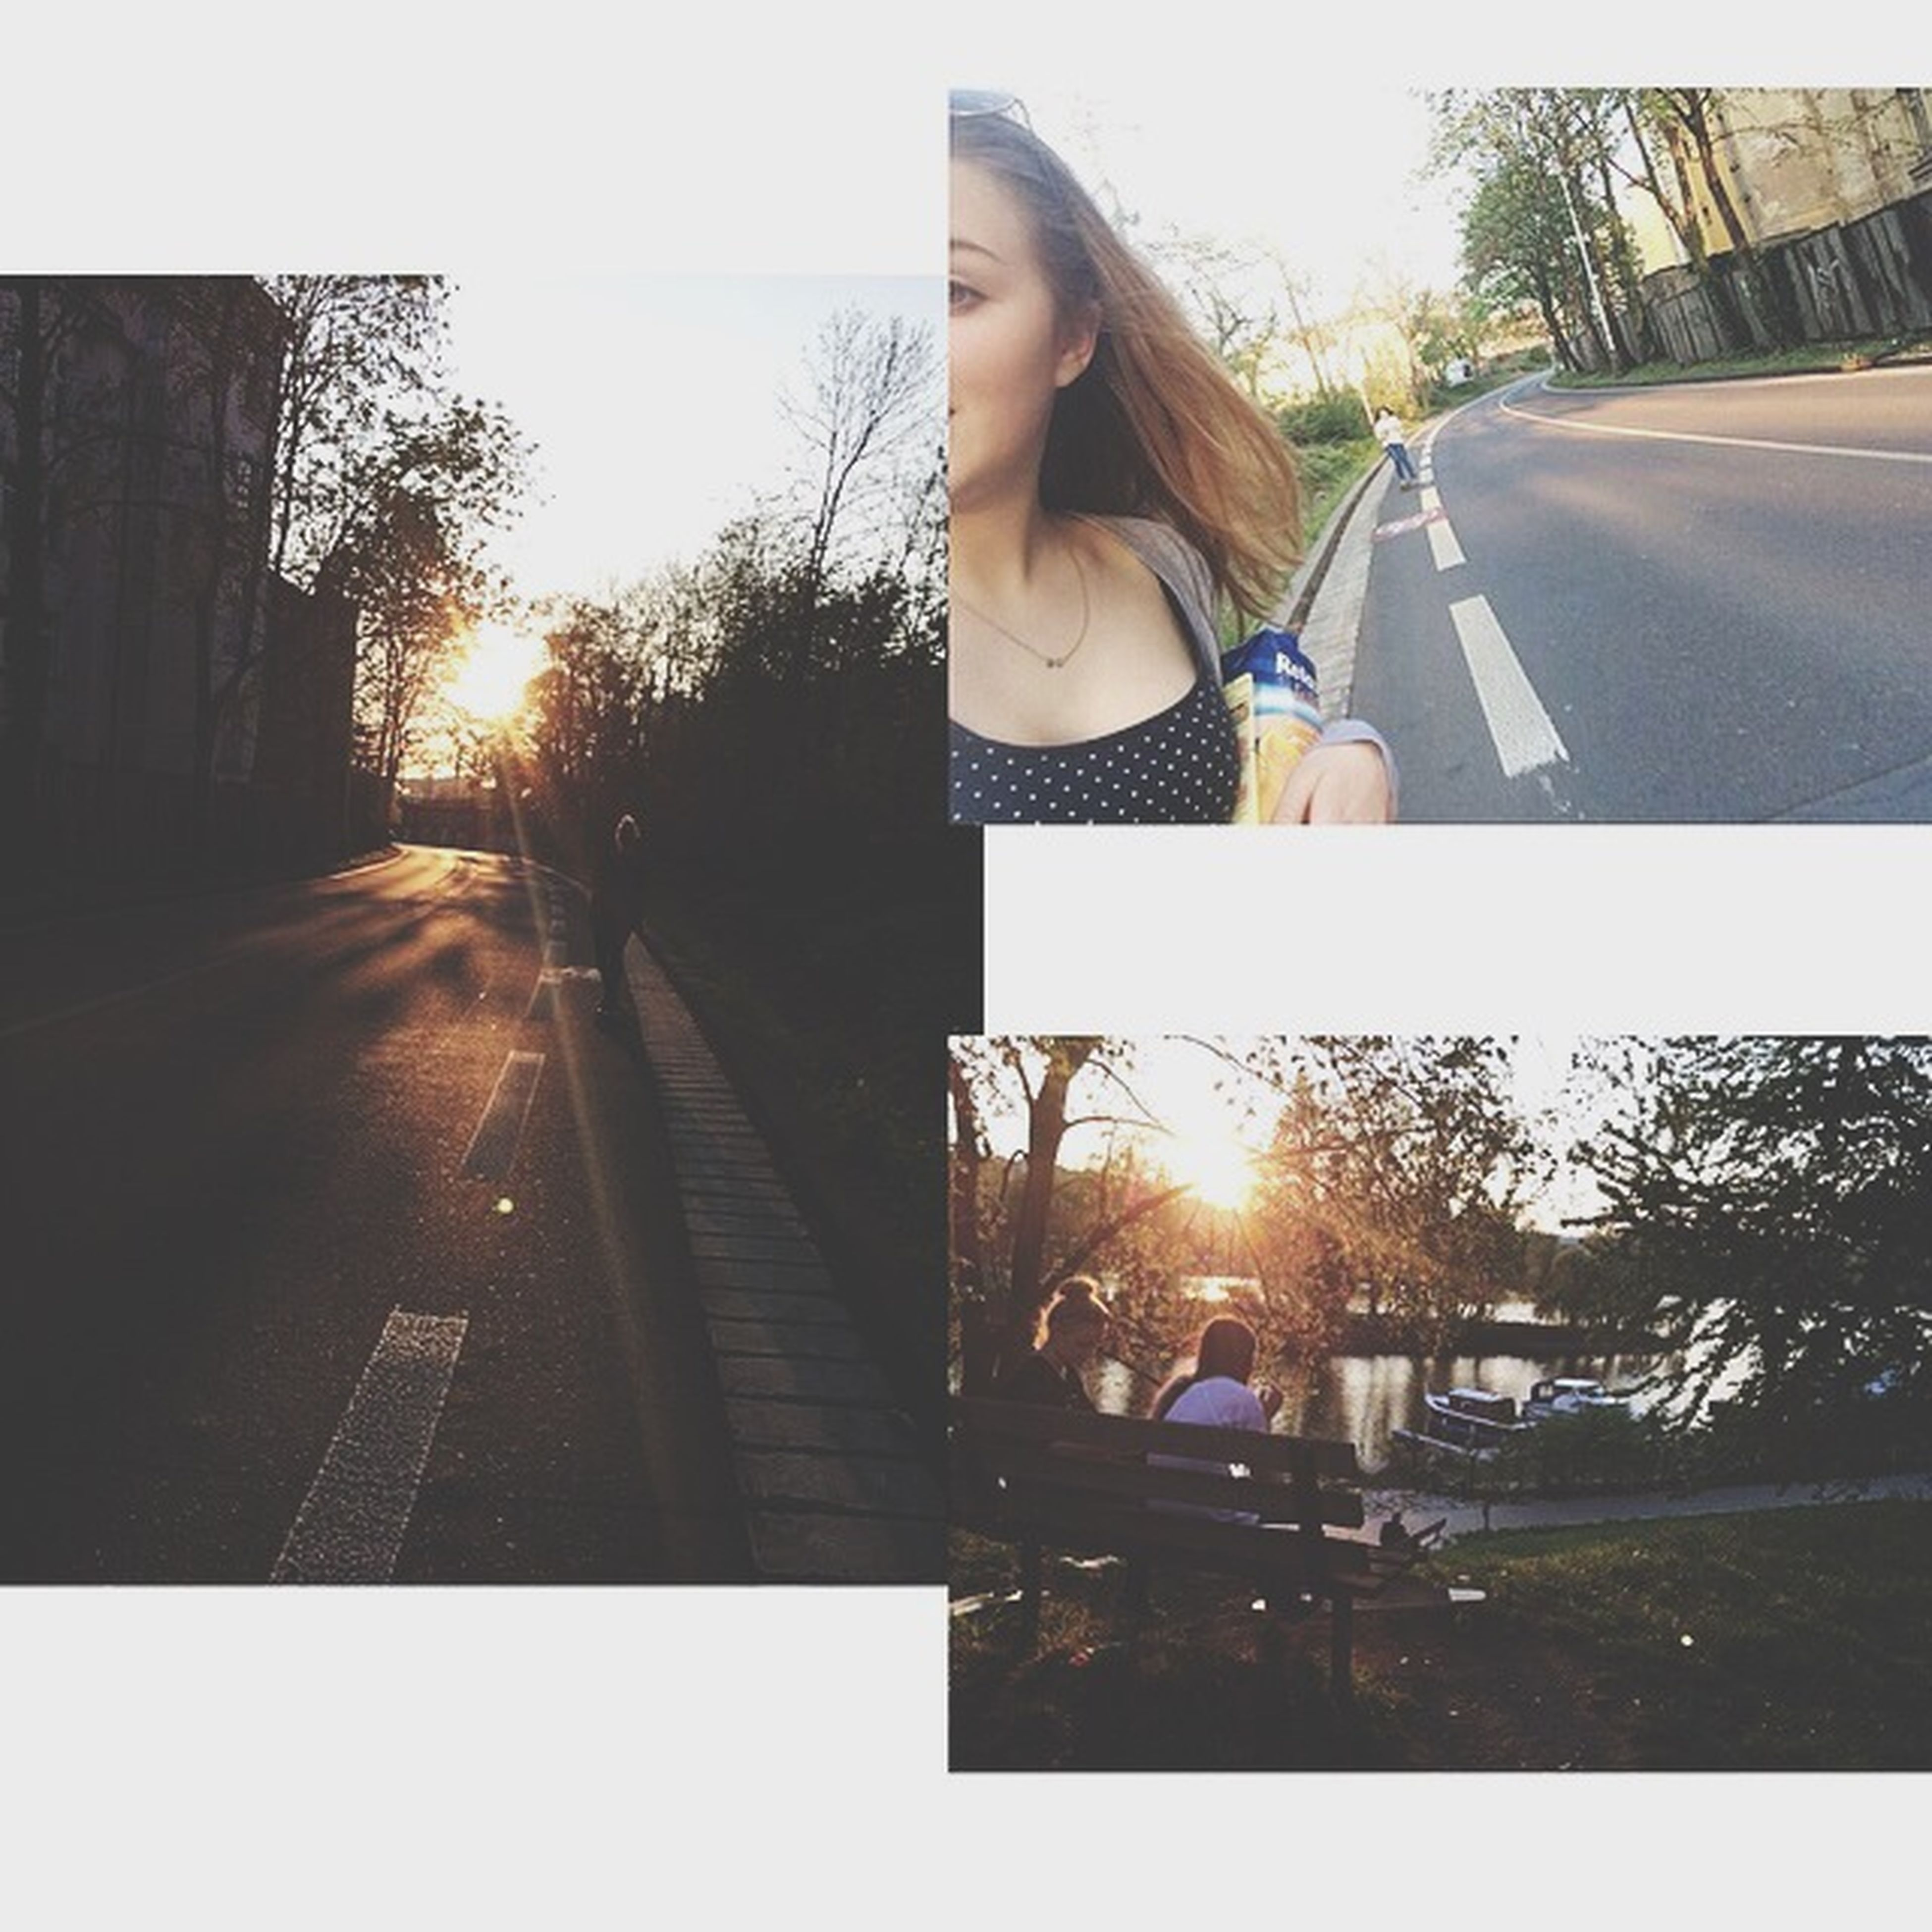 sun, sunlight, sunbeam, lens flare, lifestyles, sunset, leisure activity, tree, sunny, transportation, street, road, car, clear sky, outdoors, bright, transfer print, sky